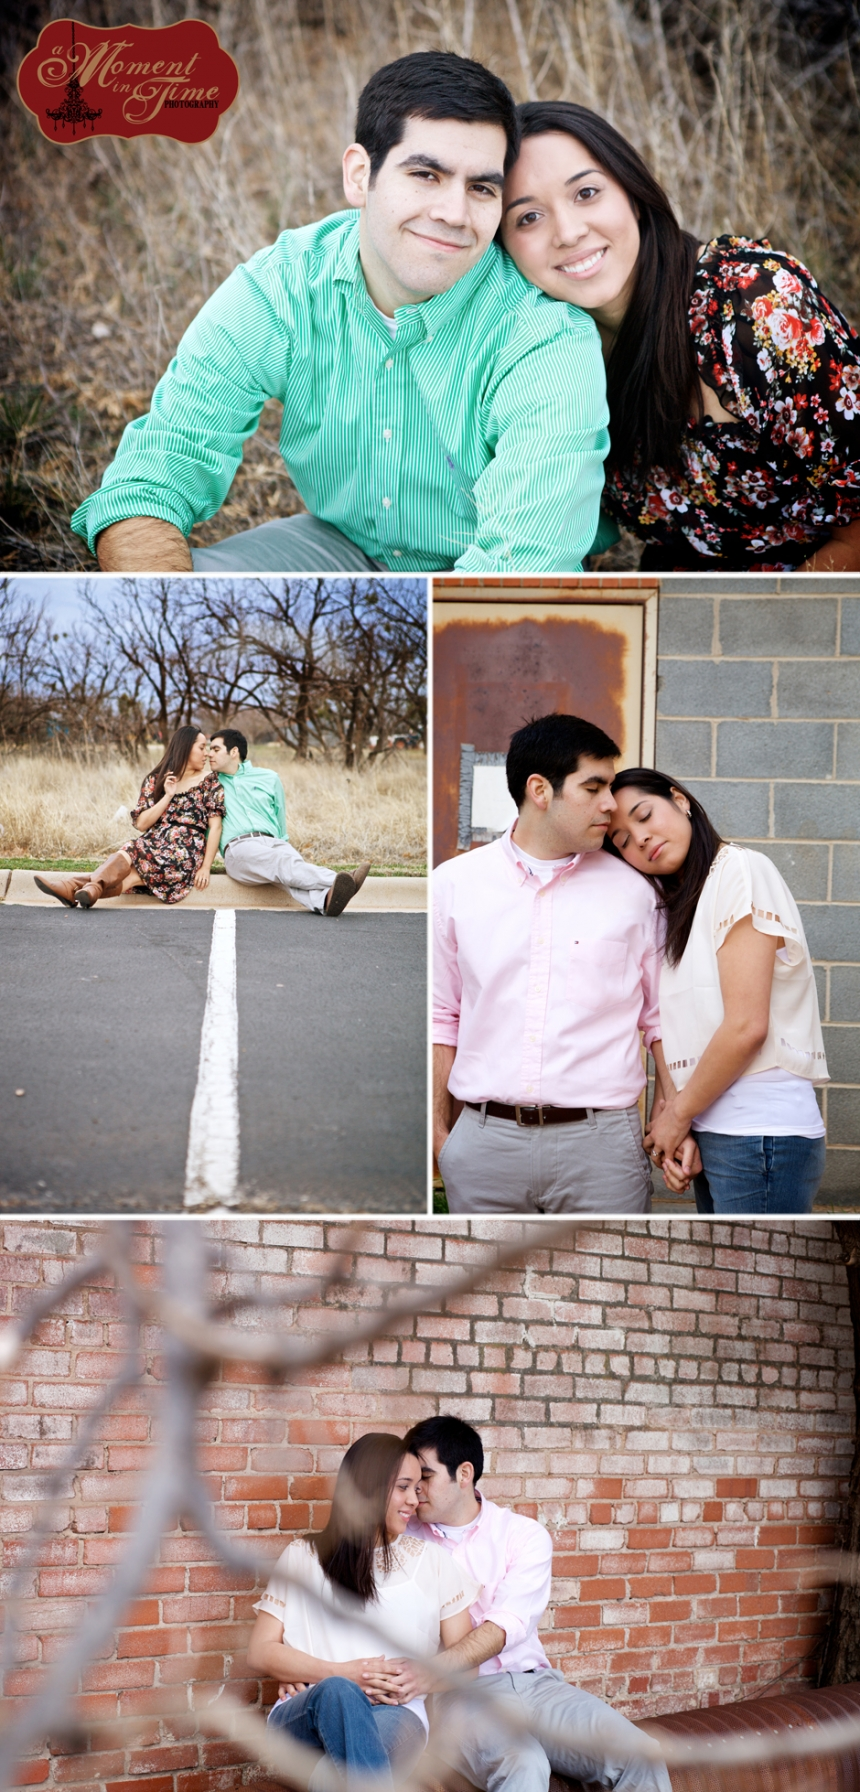 Zachary Rose, or Zach Rose, is marrying Laura Salas, now Laura Rose, and chose Abilene Wedding photographer Jennifer Nieland of A Moment in Time Photography to take both their engagement photos as well as their Abilene wedding photos.